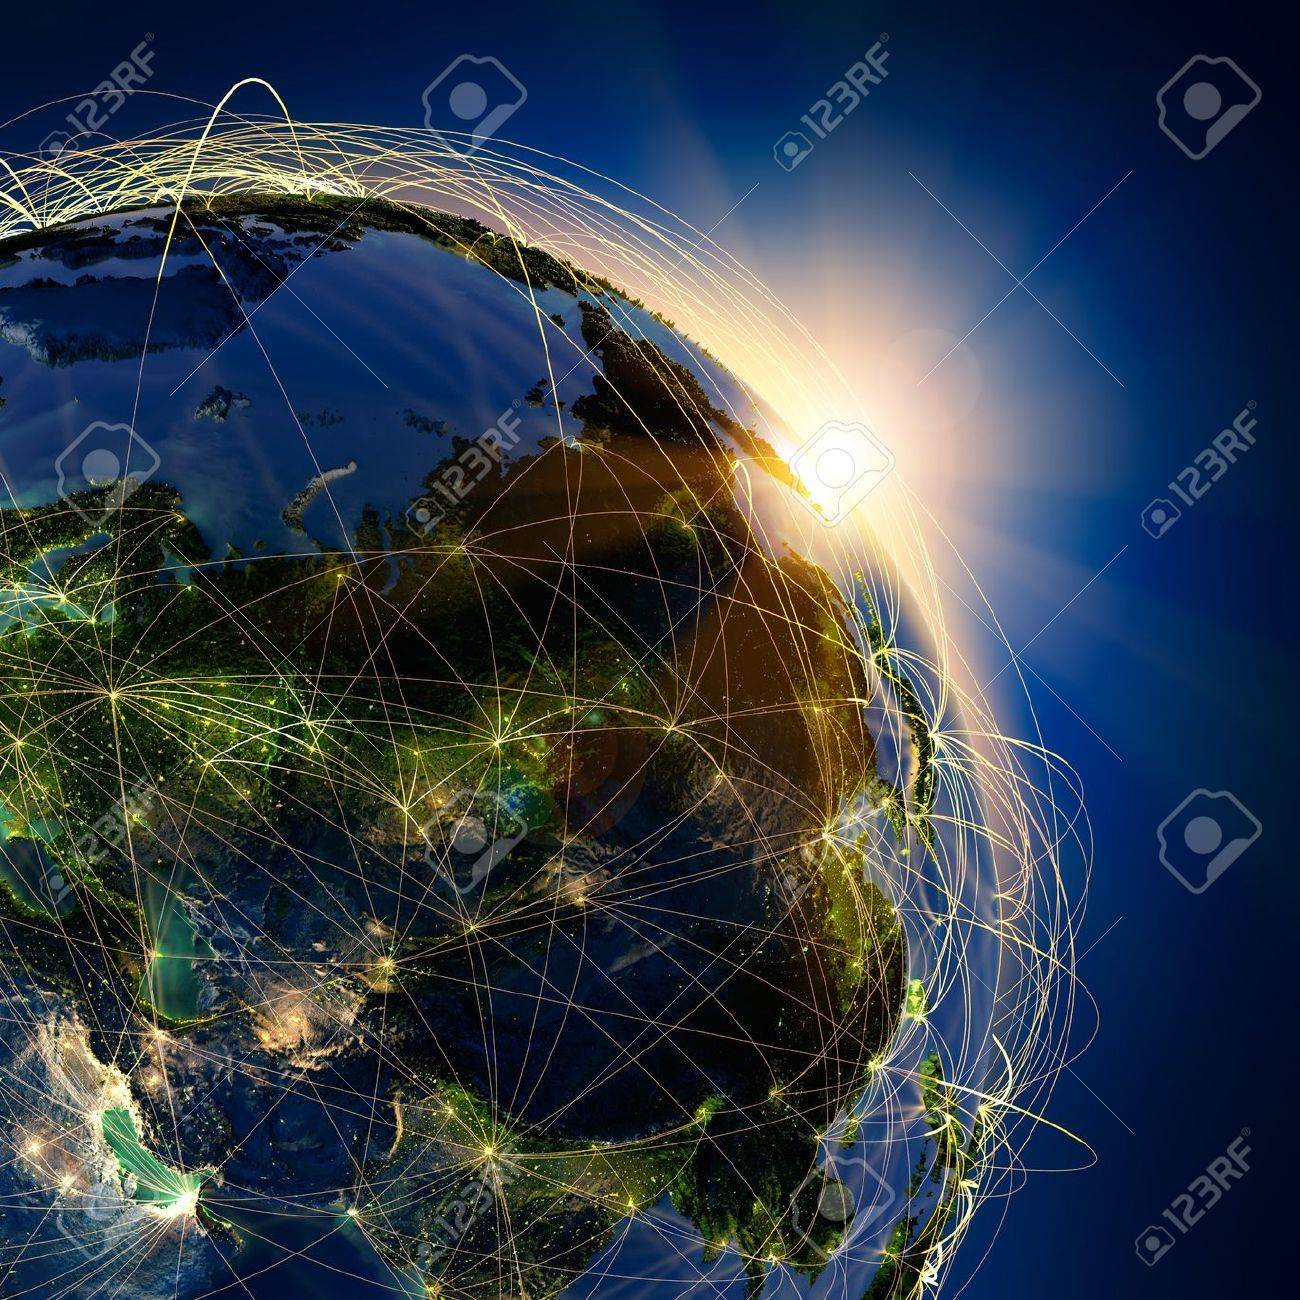 Highly detailed planet Earth at night, lit by the rising sun, with embossed continents, illuminated by light of cities, translucent and reflective ocean Earth is surrounded by a luminous network, representing the major air routes based on real data - 13284942